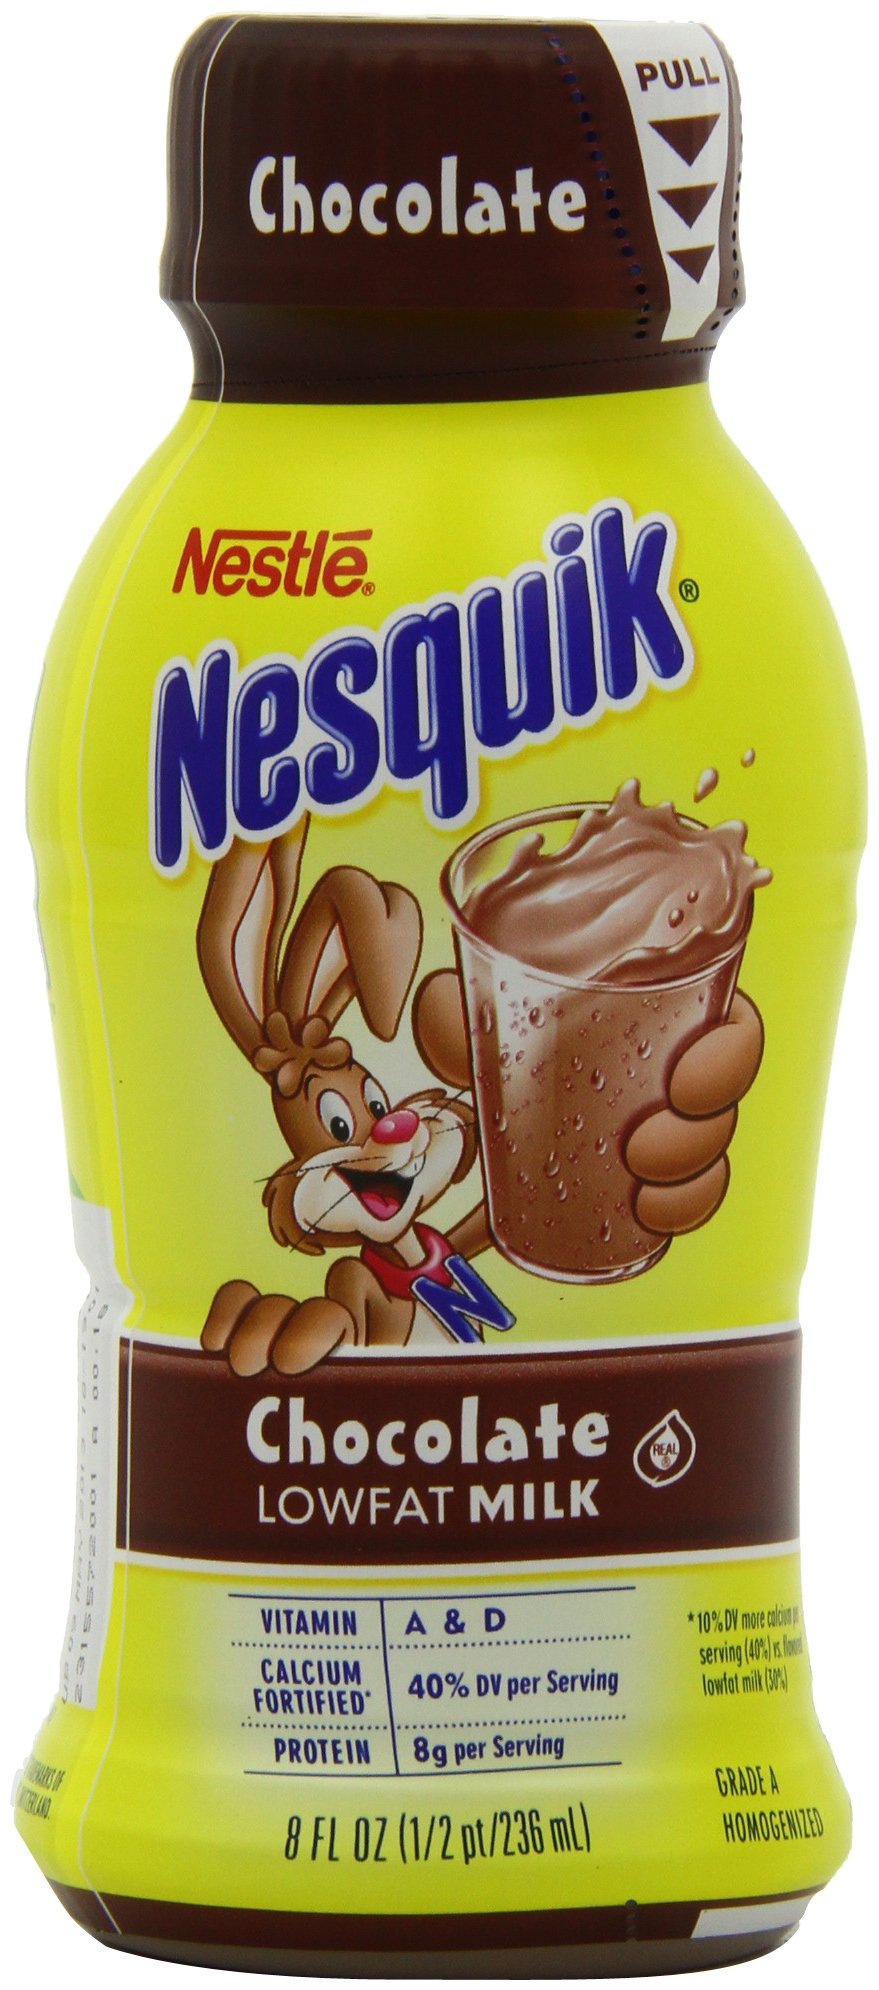 Nestle Nesquik Ready-To-Drink Flavored Milk, Low Fat Chocolate (1% Milkfat), 8-Ounce Bottles (Pack of 24)